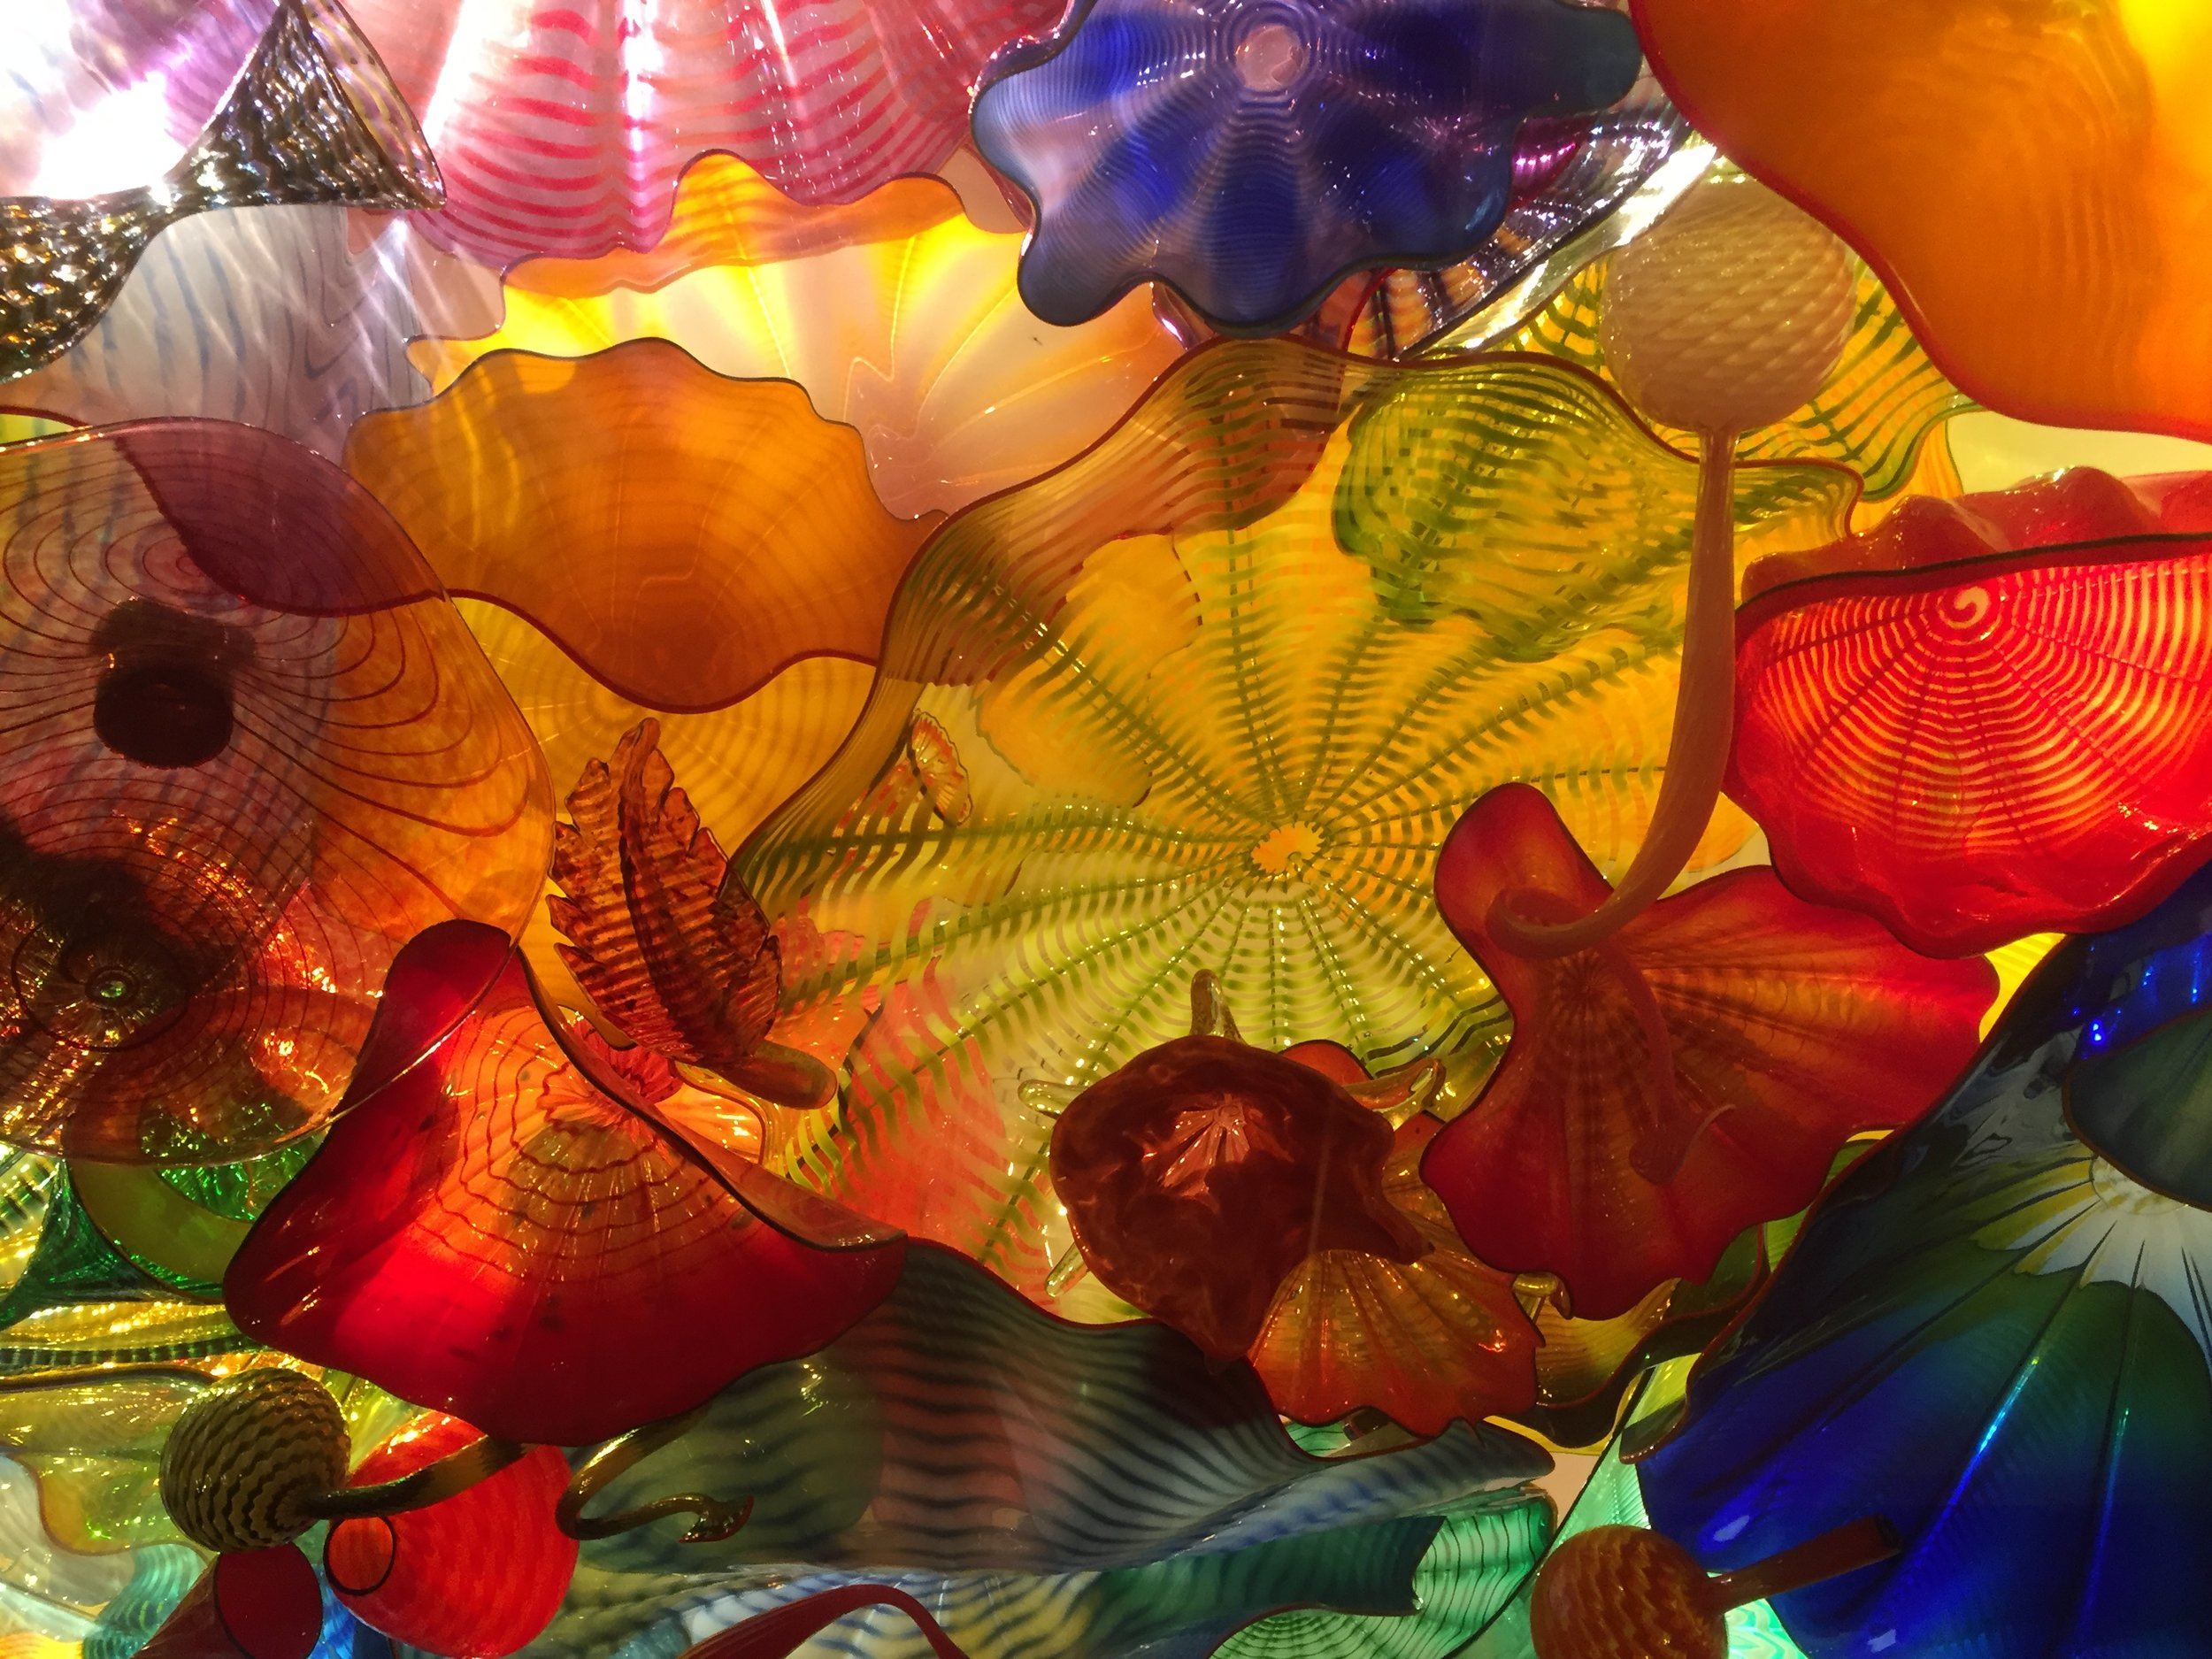 Picture: Chihuly Museum of Glass 2016